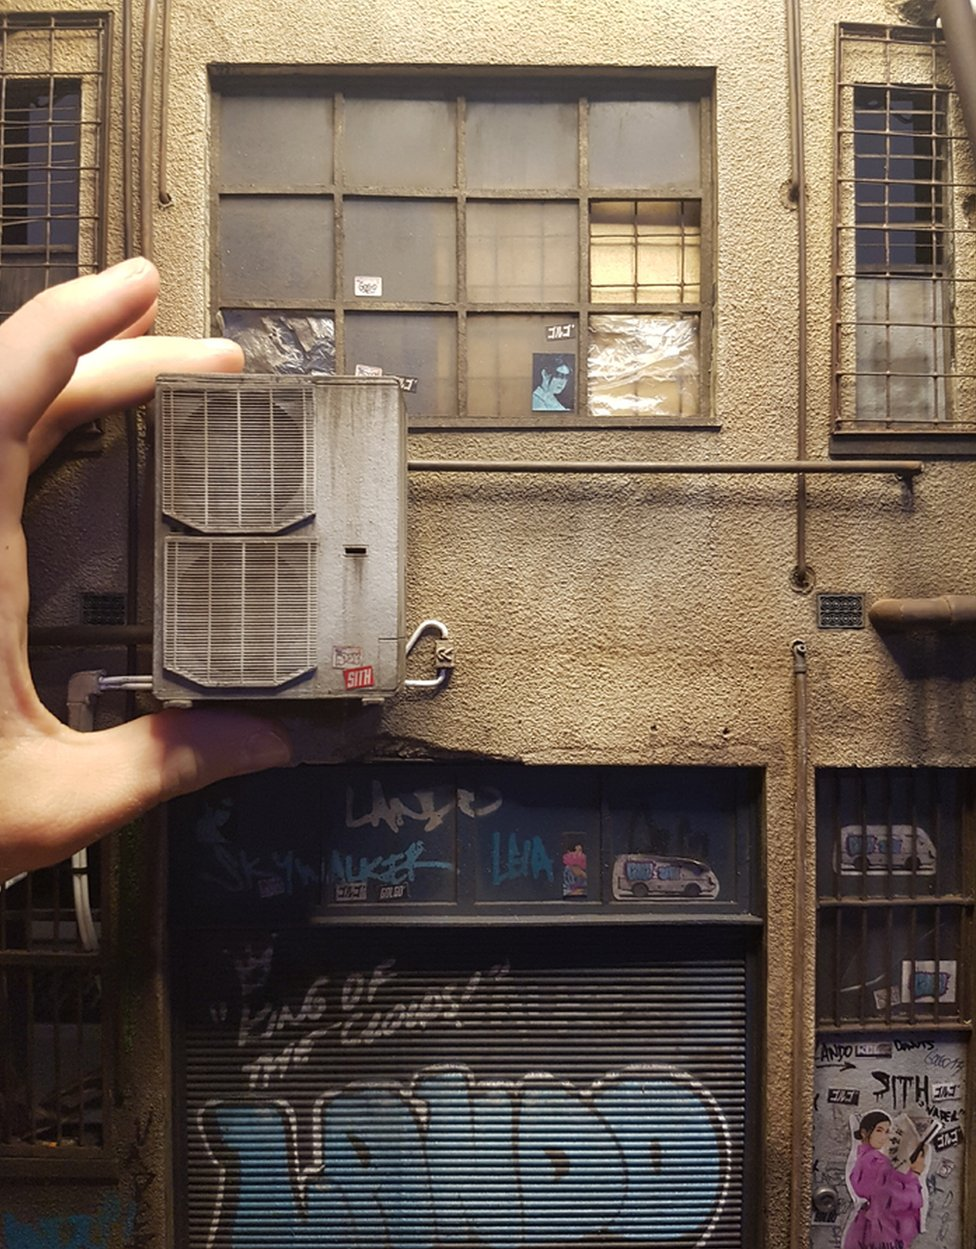 A small model of a building close up